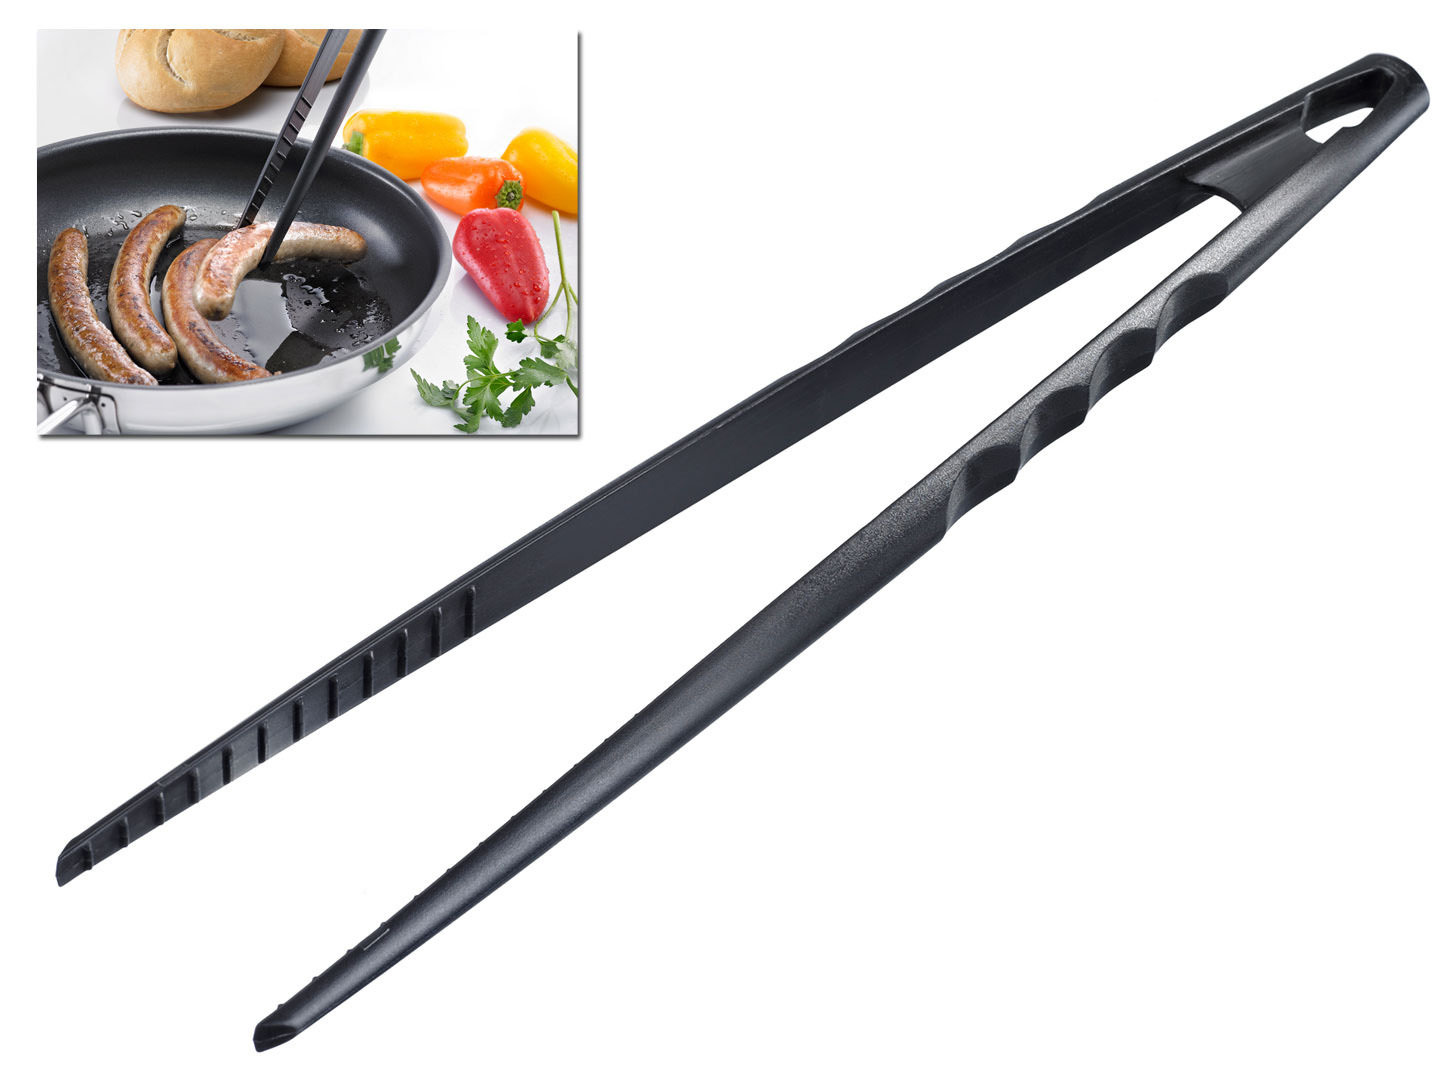 WESTMARK frying / serving pincers heat-resistant plastics